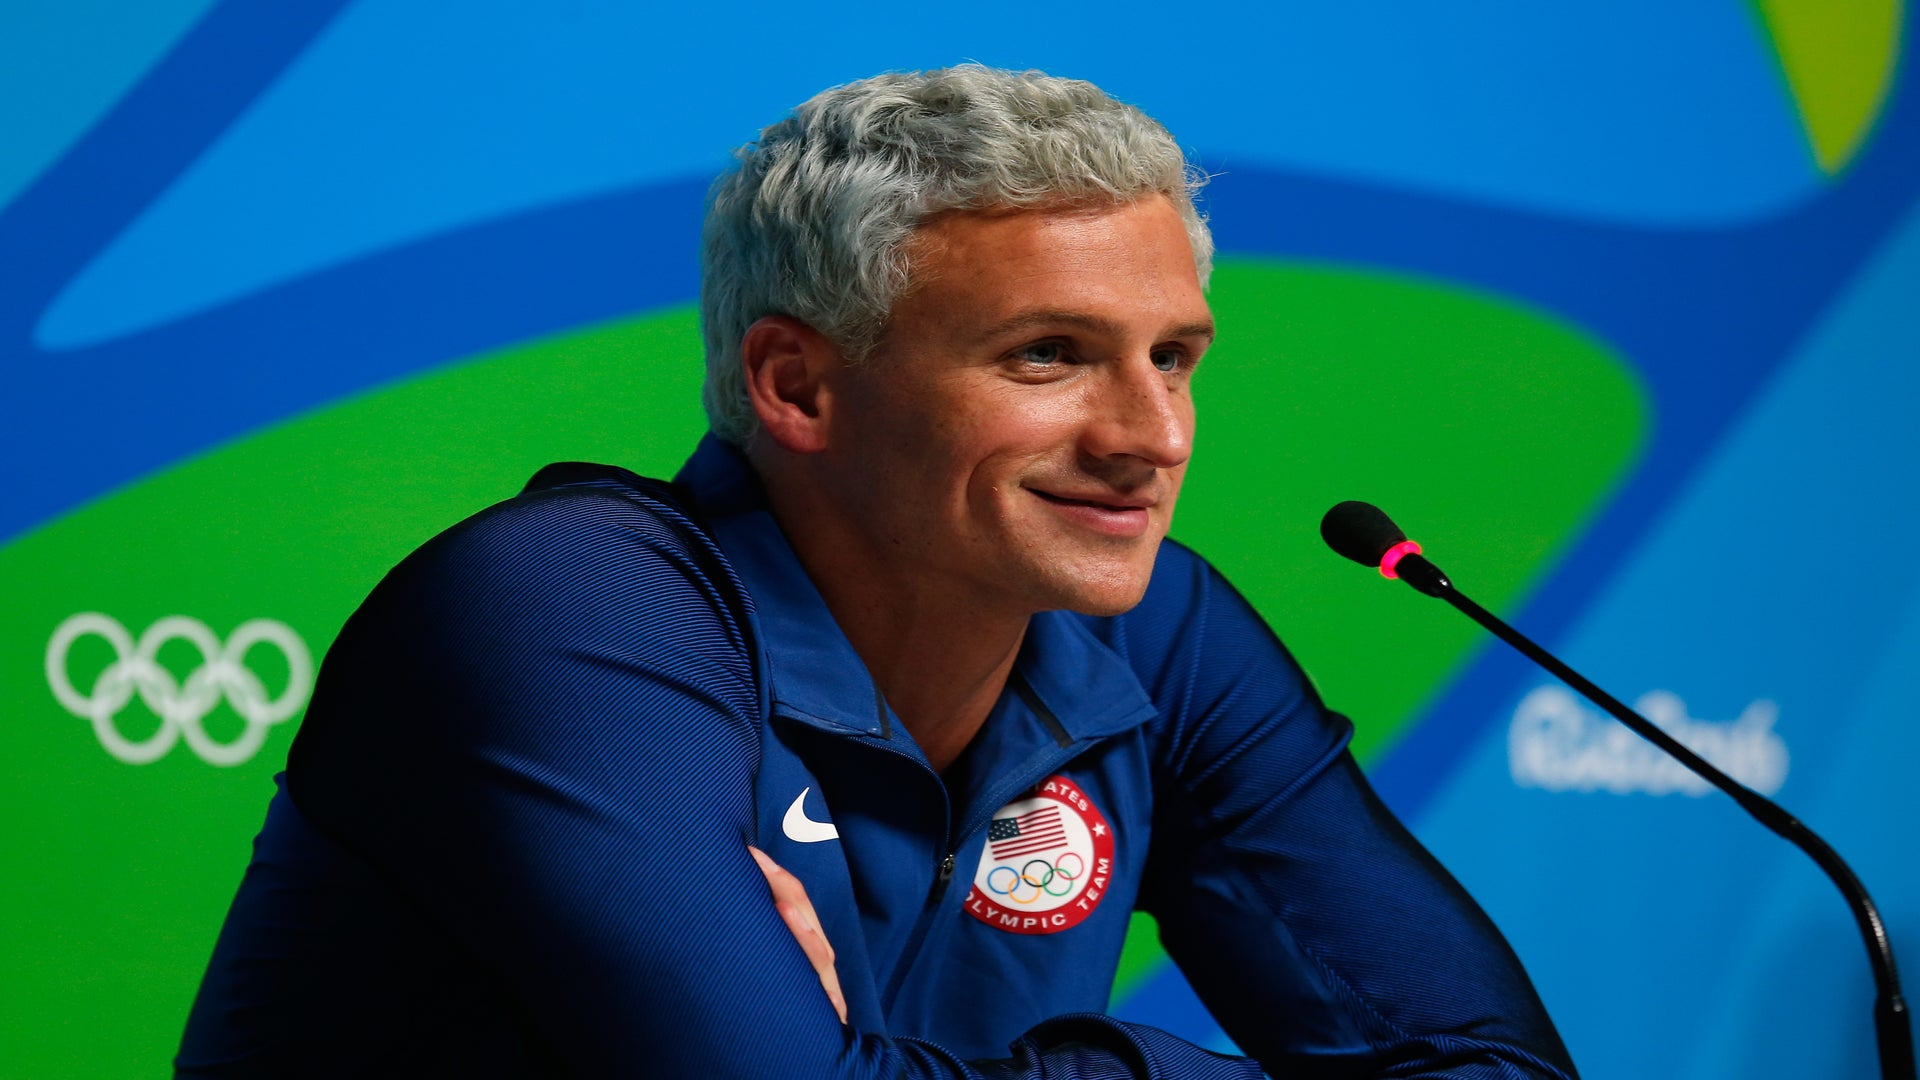 Ryan Lochte and James Feigen May Be Indicted